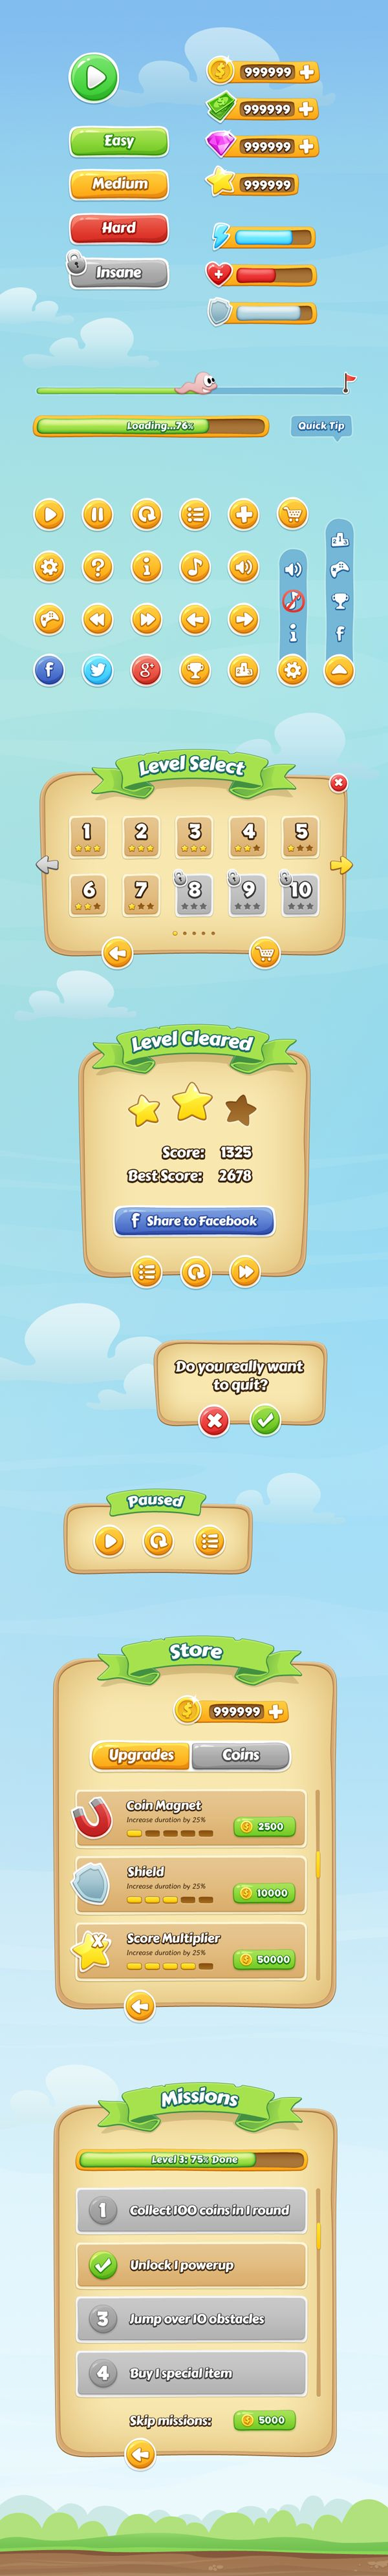 Mobile Game GUI on Behance